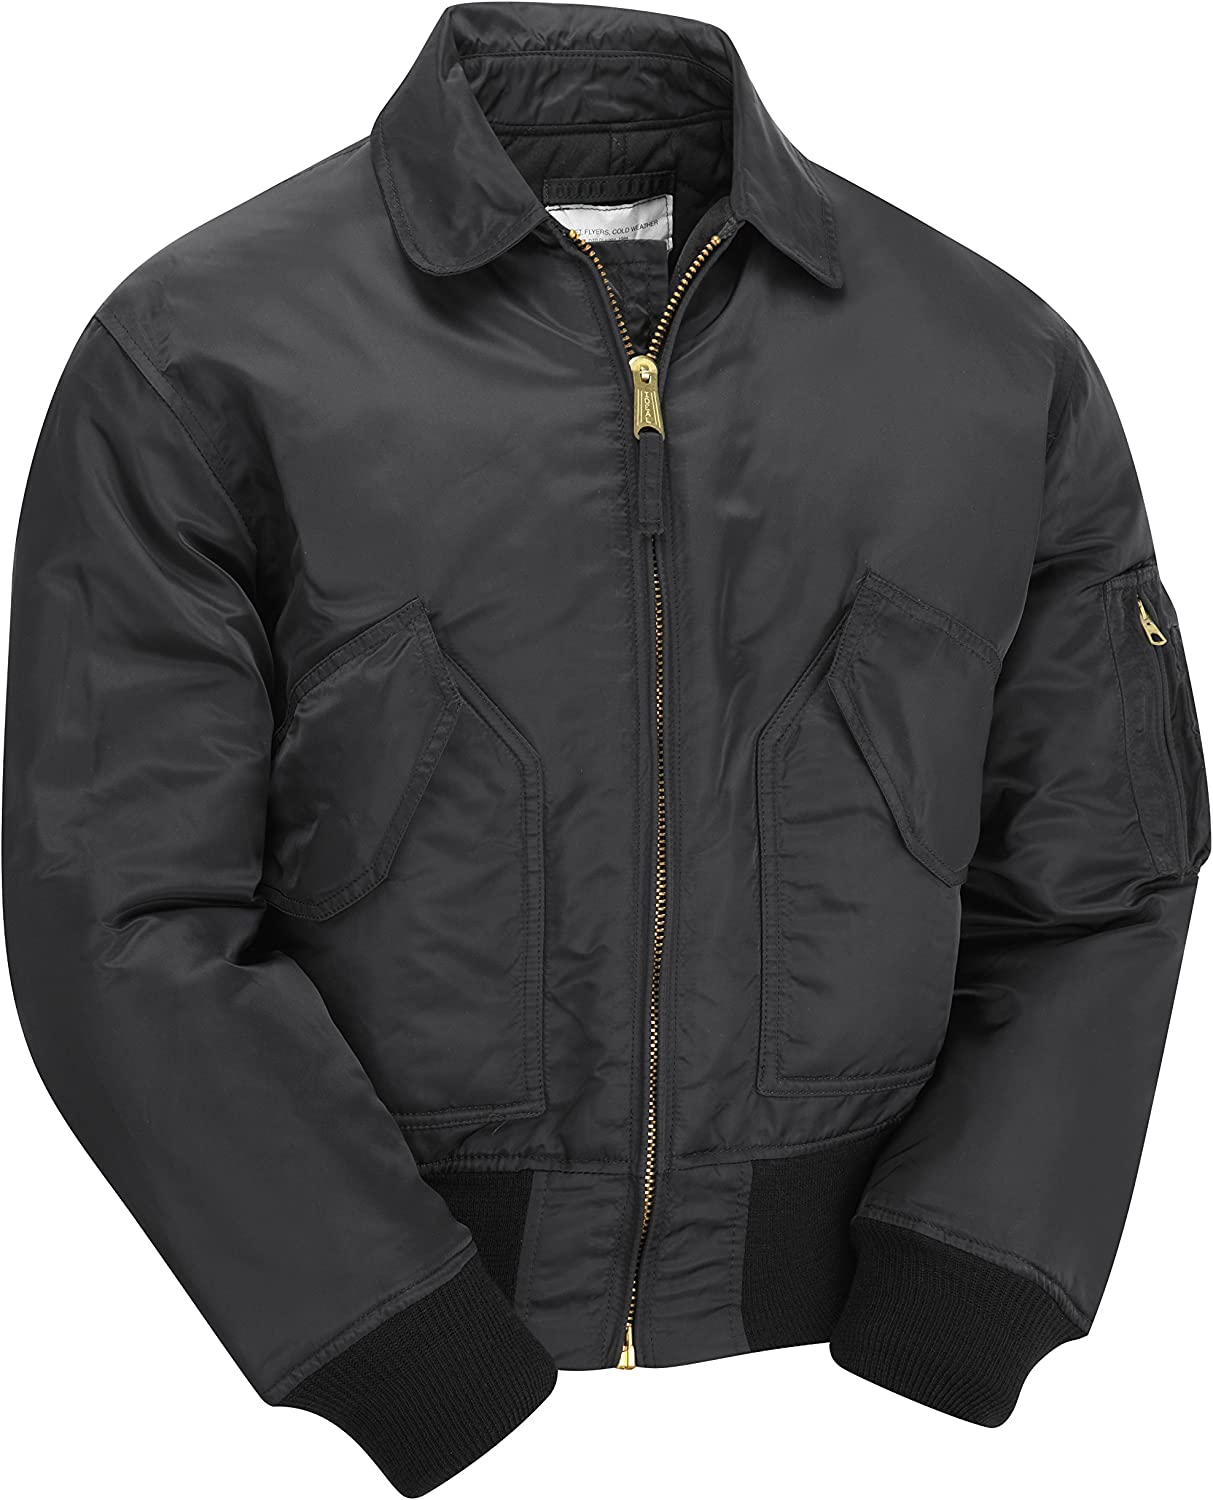 Concord CWU MA-2 Cold Weather Flyers Jacket Black